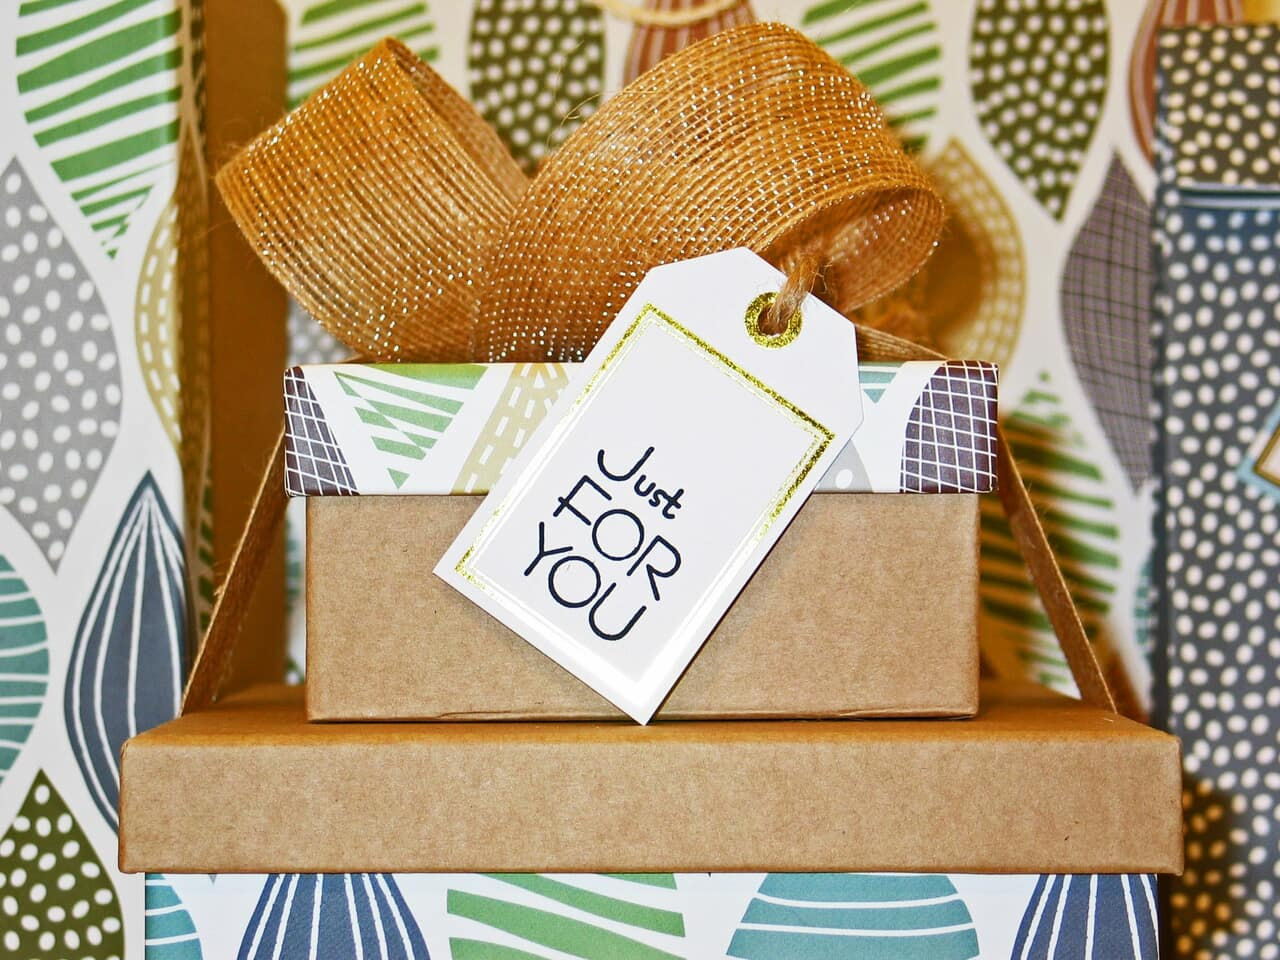 gifts, presents, and vouchers image